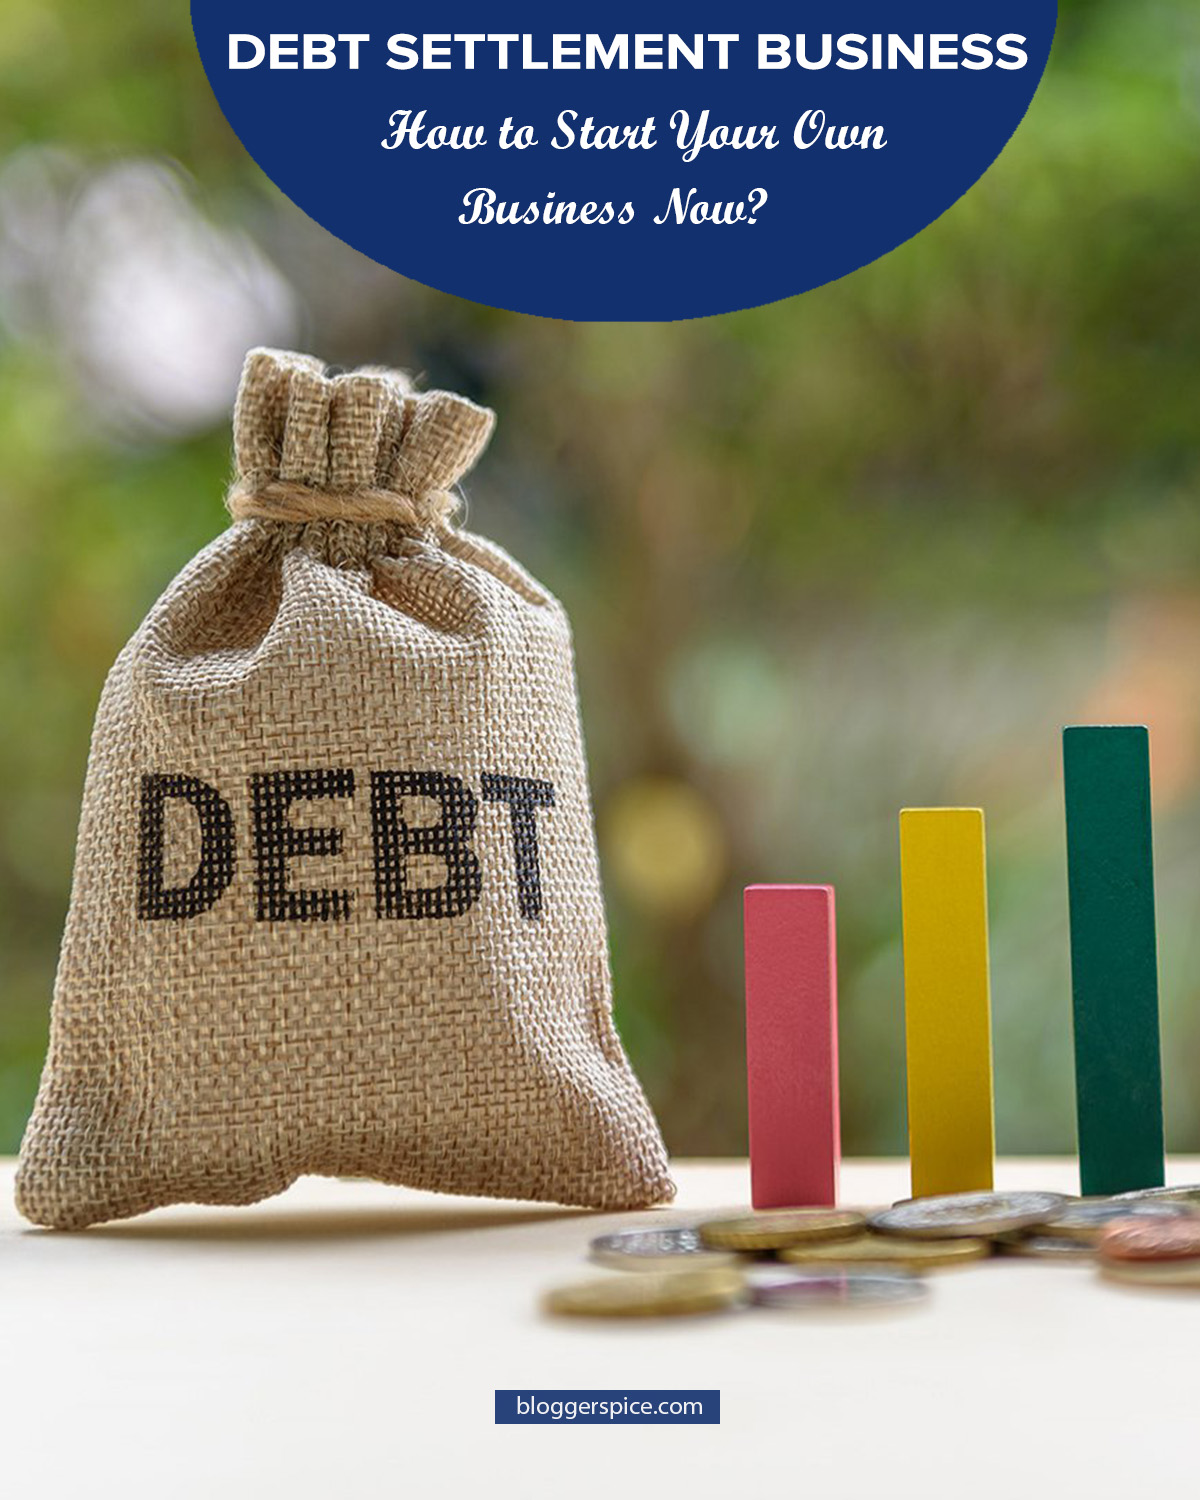 Start a debt settlement company | Start A Debt Settlement Business